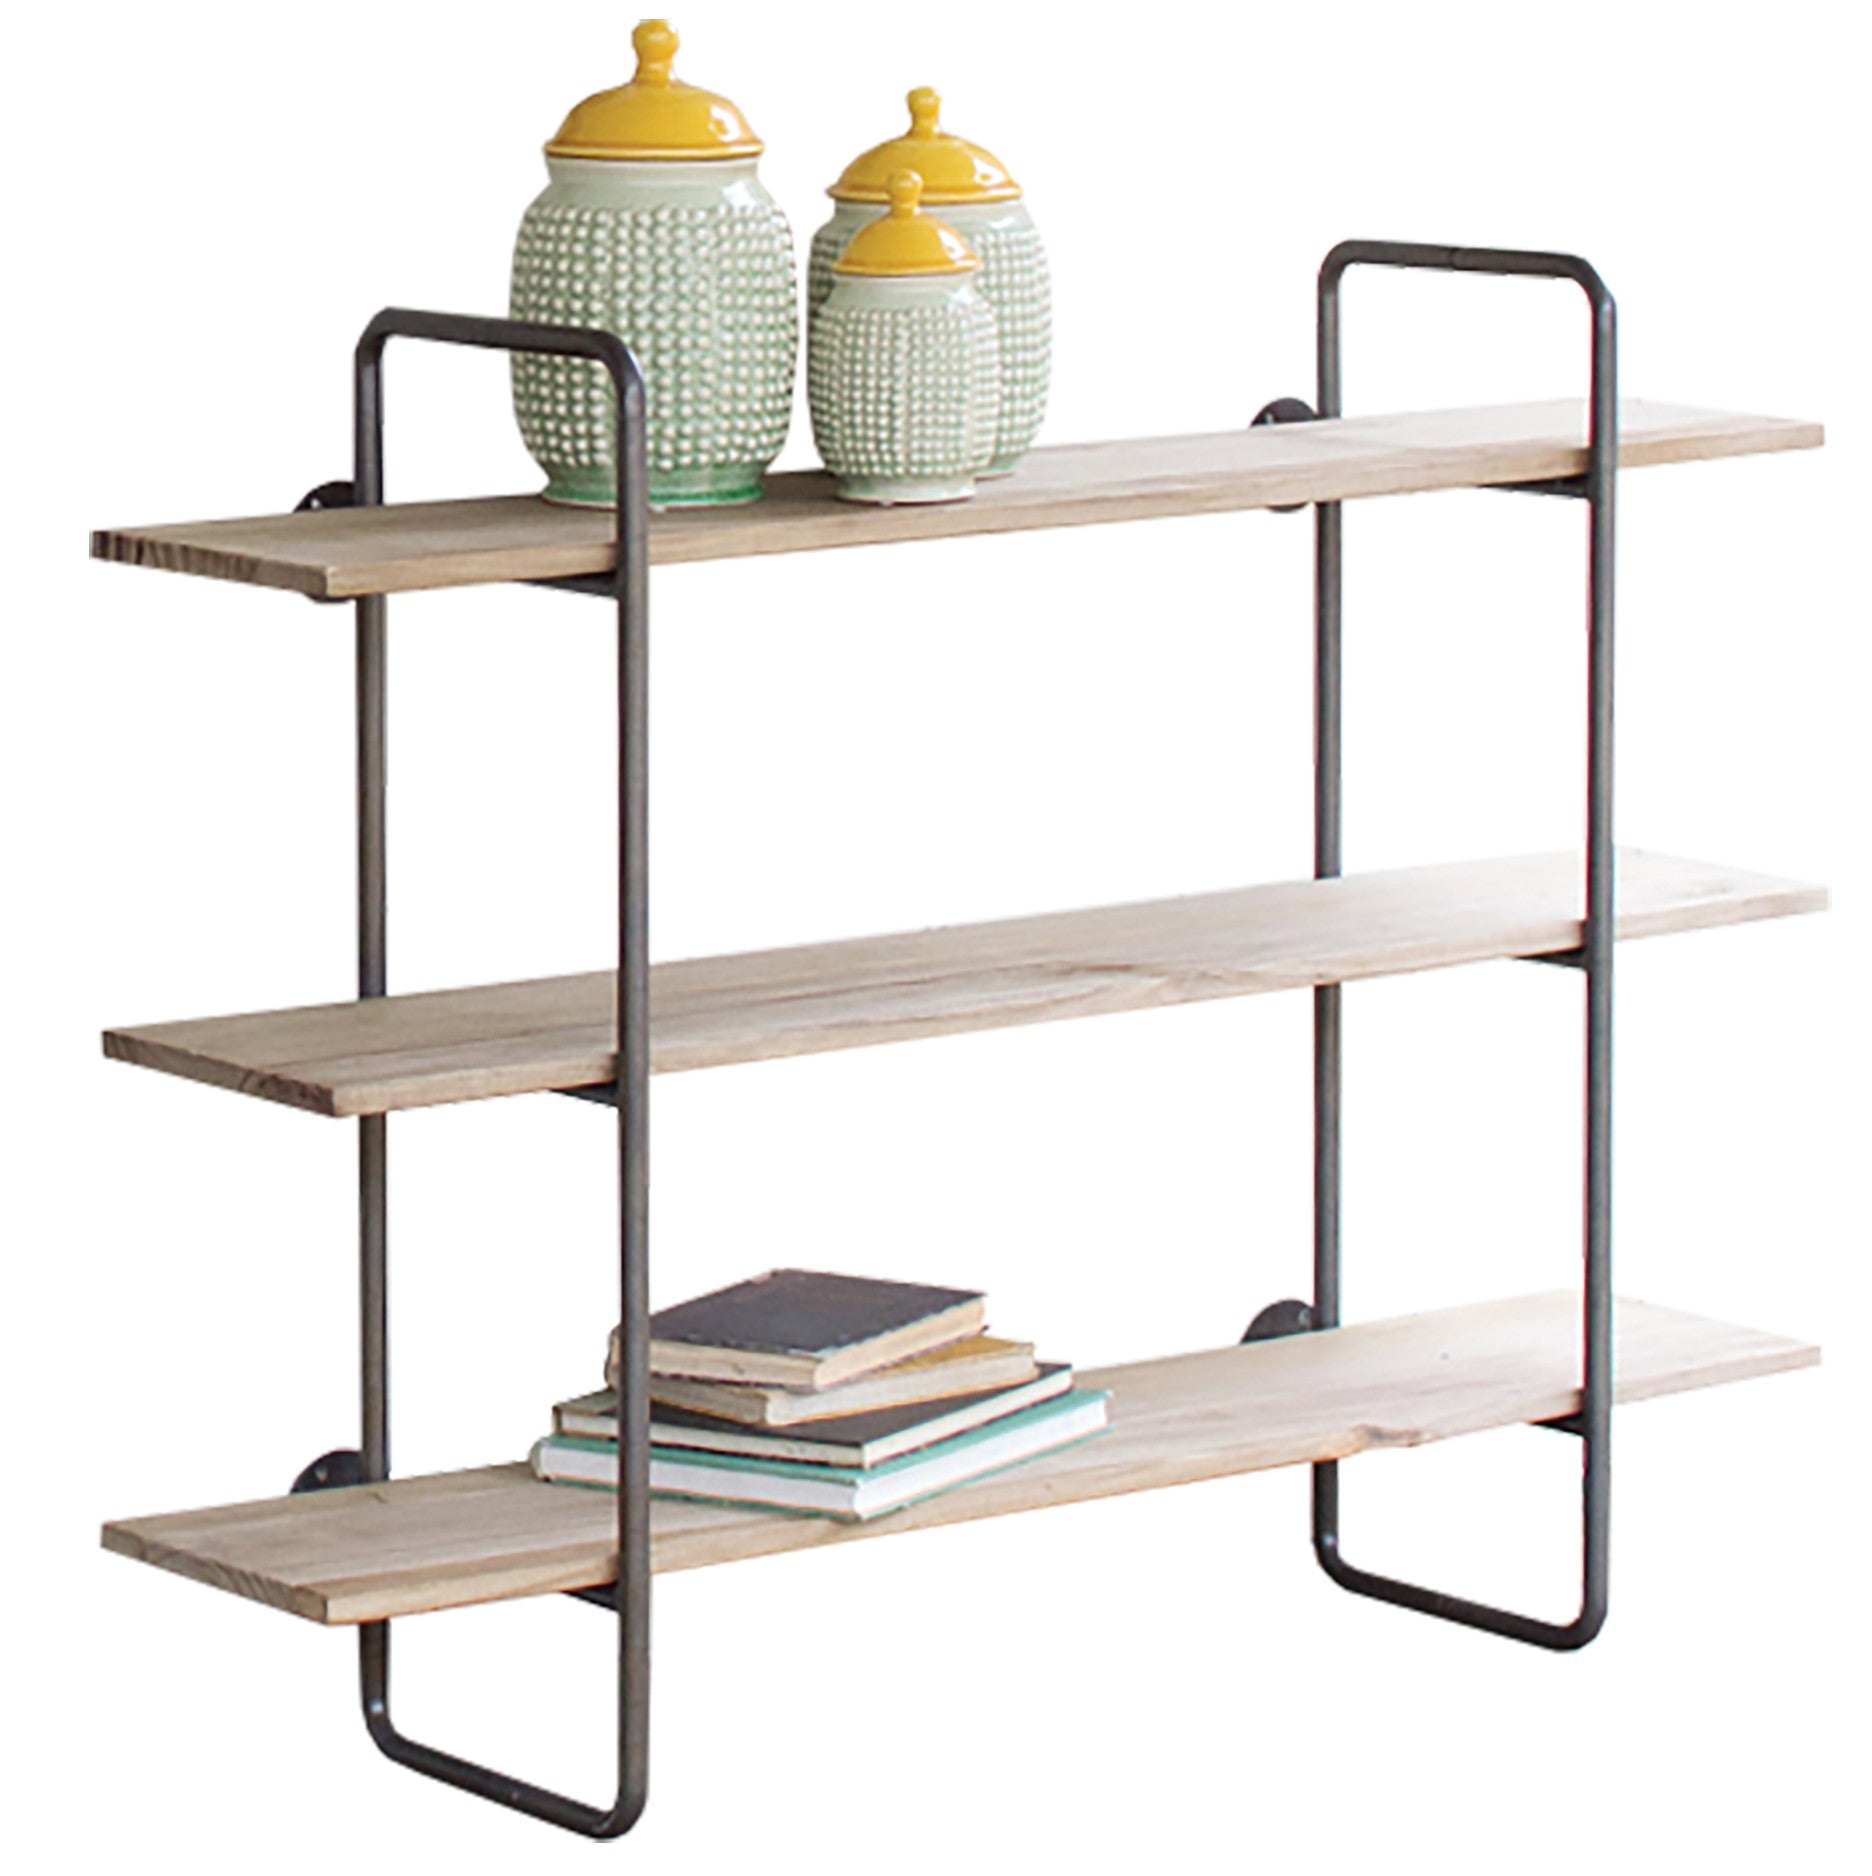 Small Industrial Modern Hanging Wall Shelf